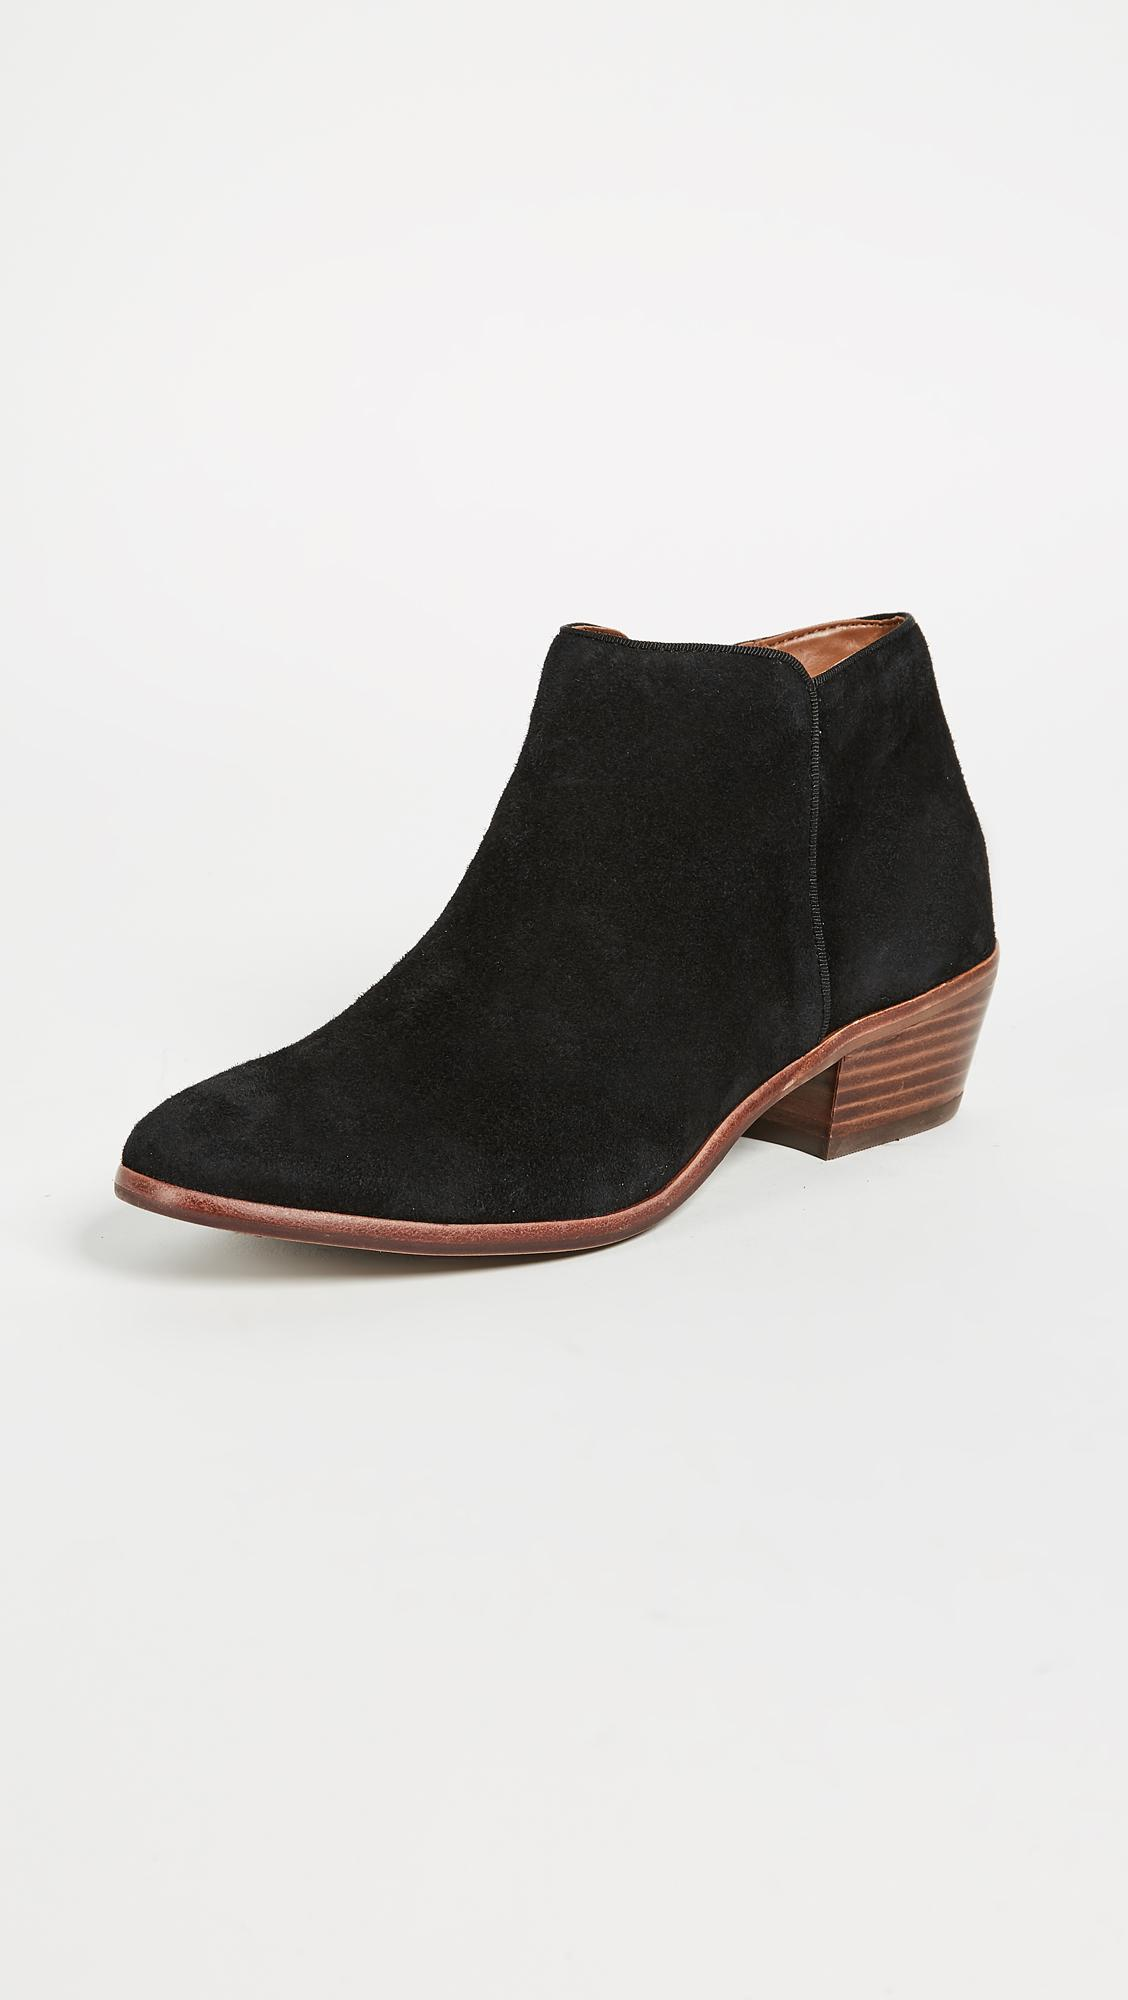 a68d89bf3461 Sam Edelman Petty Suede Booties - Save 83% - Lyst